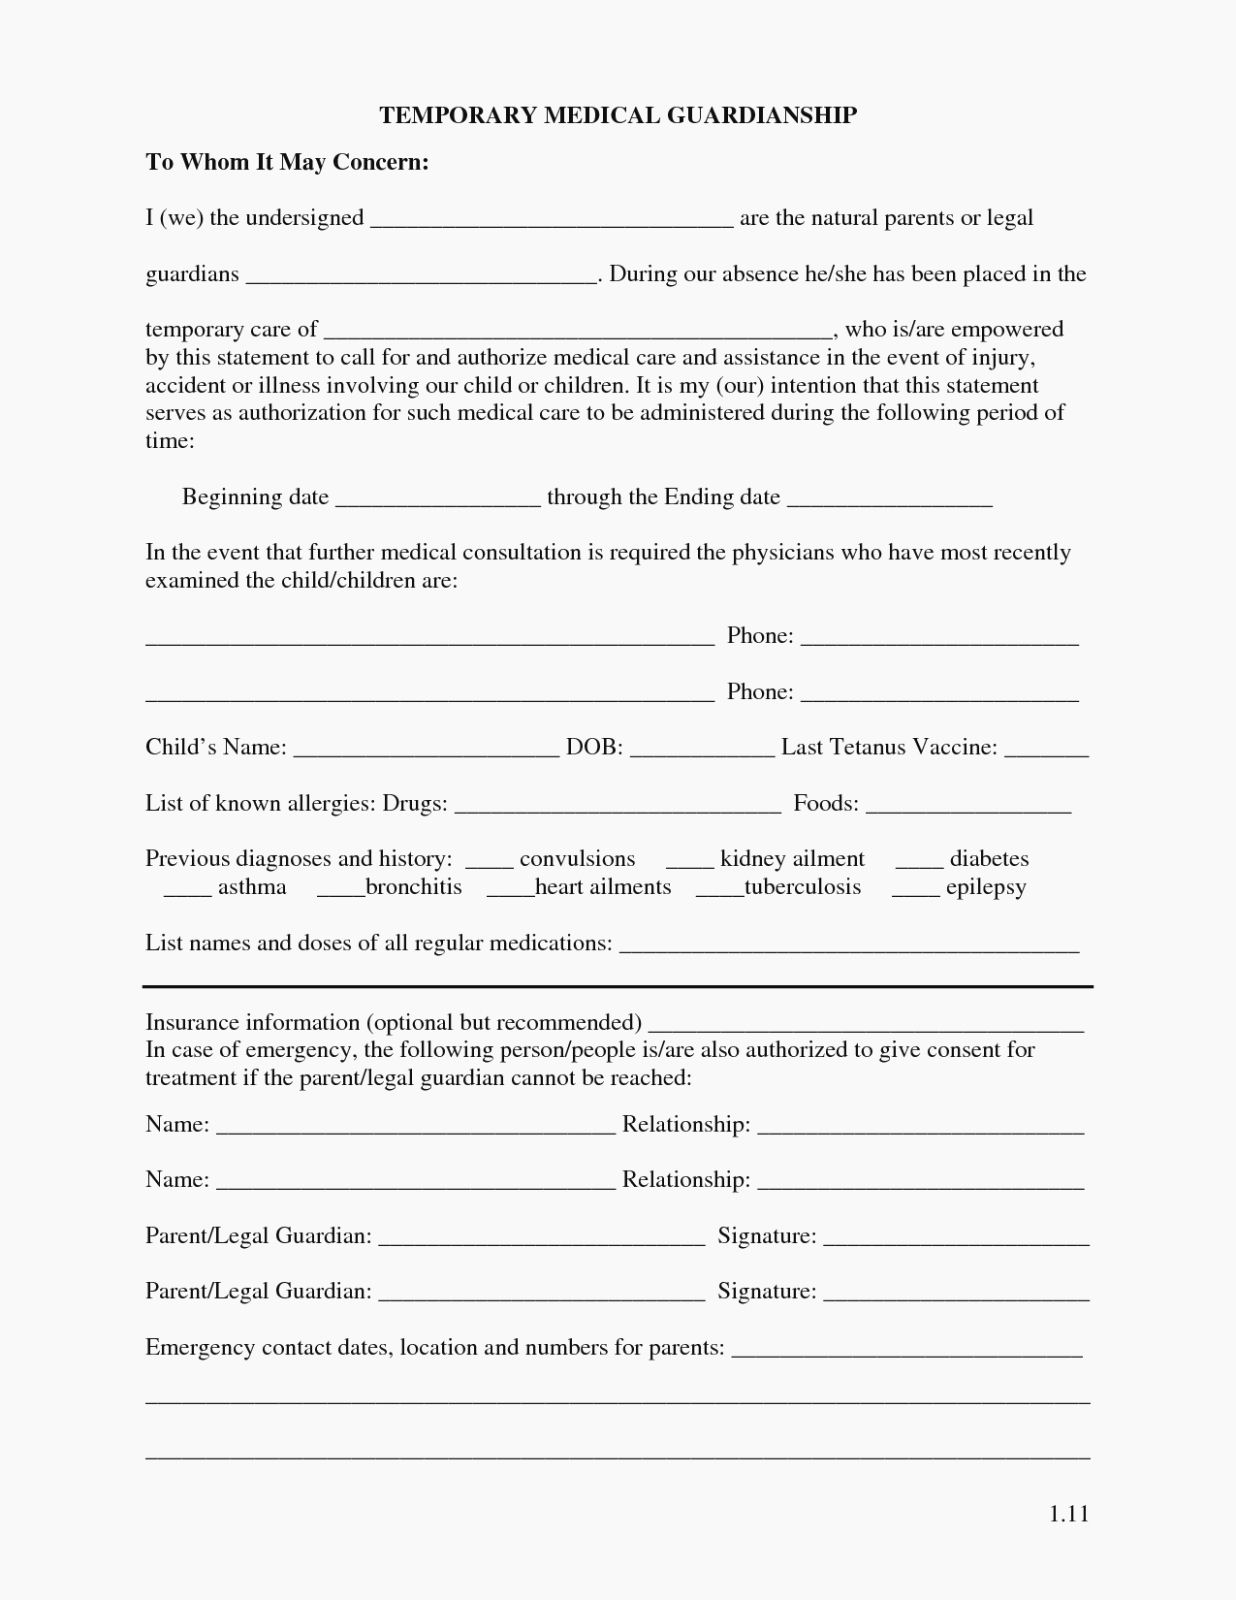 free temporary guardianship form elegant attending legal ms word cv template download two page resume headline